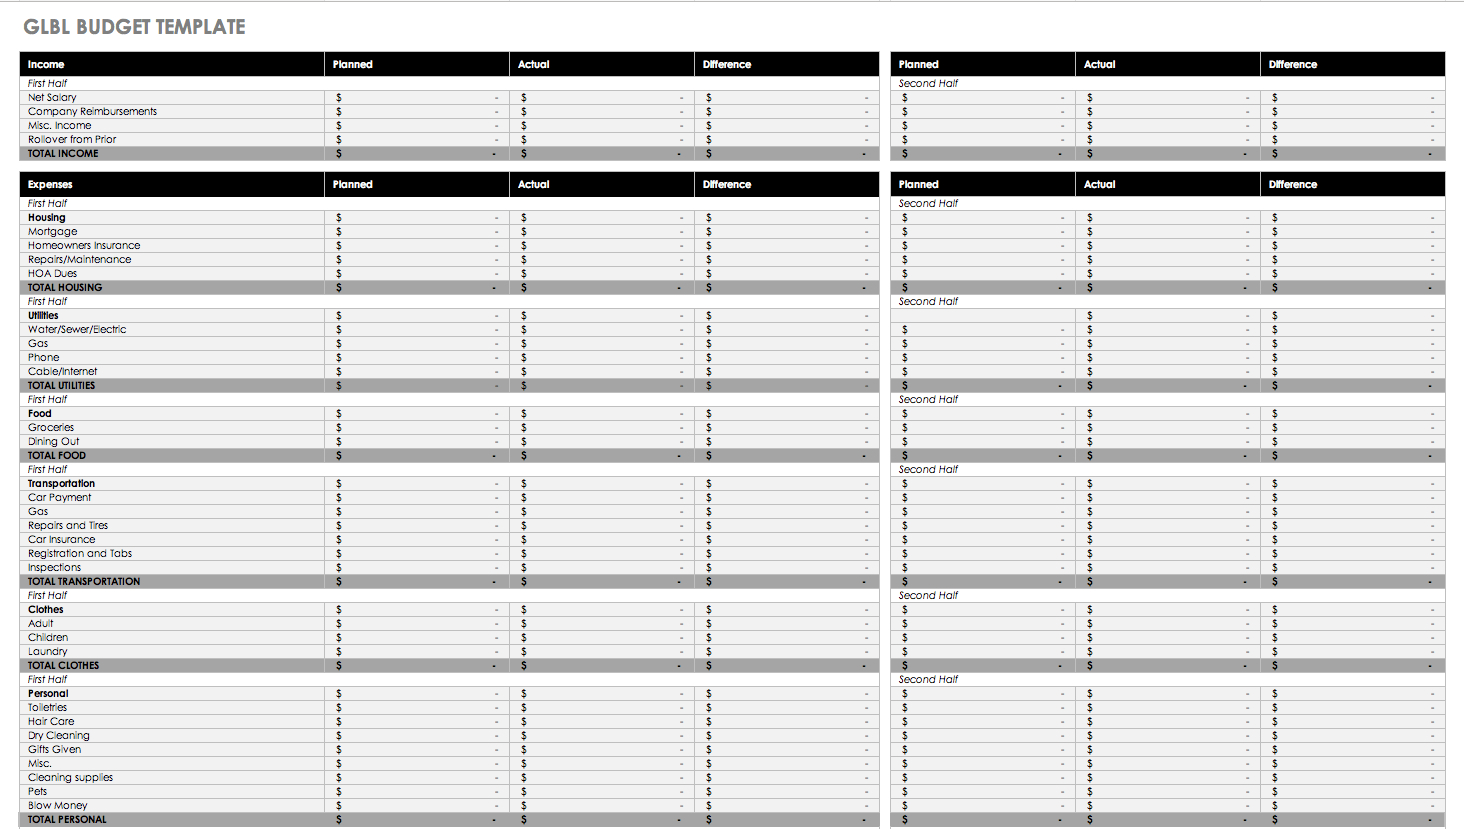 Hoa Budget Spreadsheet Throughout Free Budget Templates In